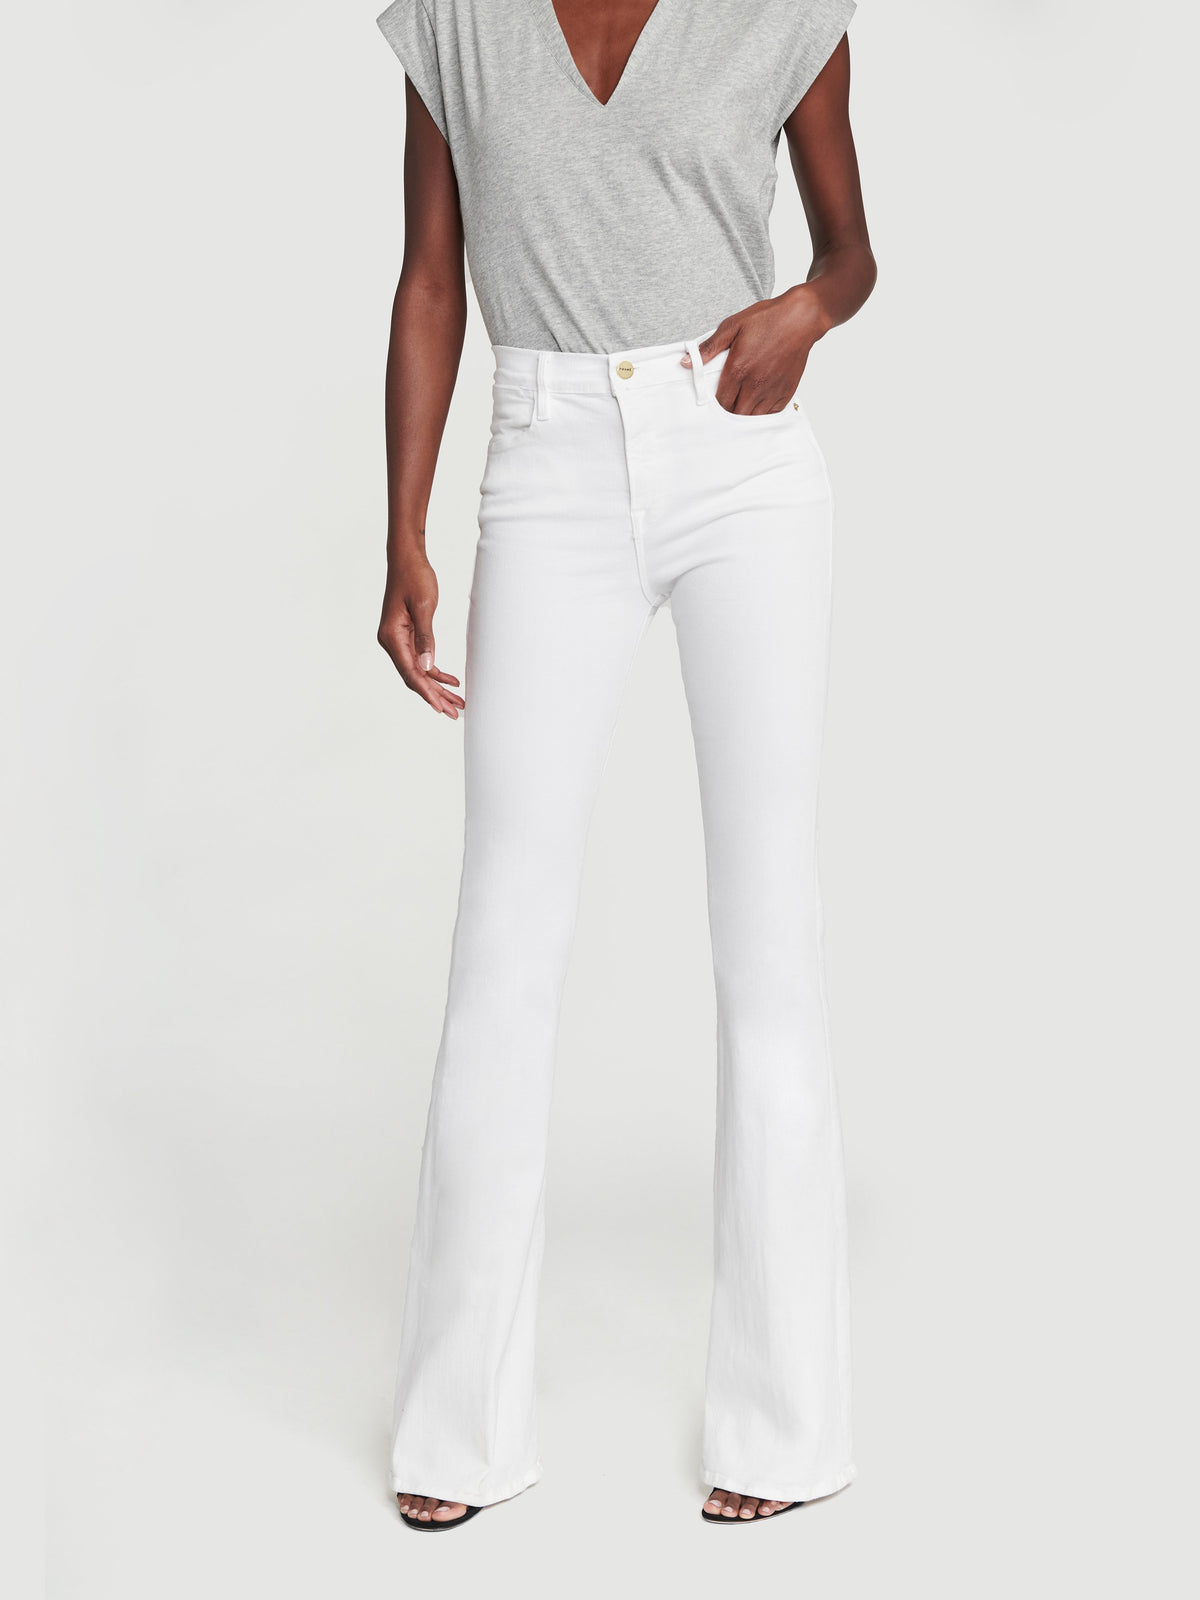 Le High Flare Jeans - White